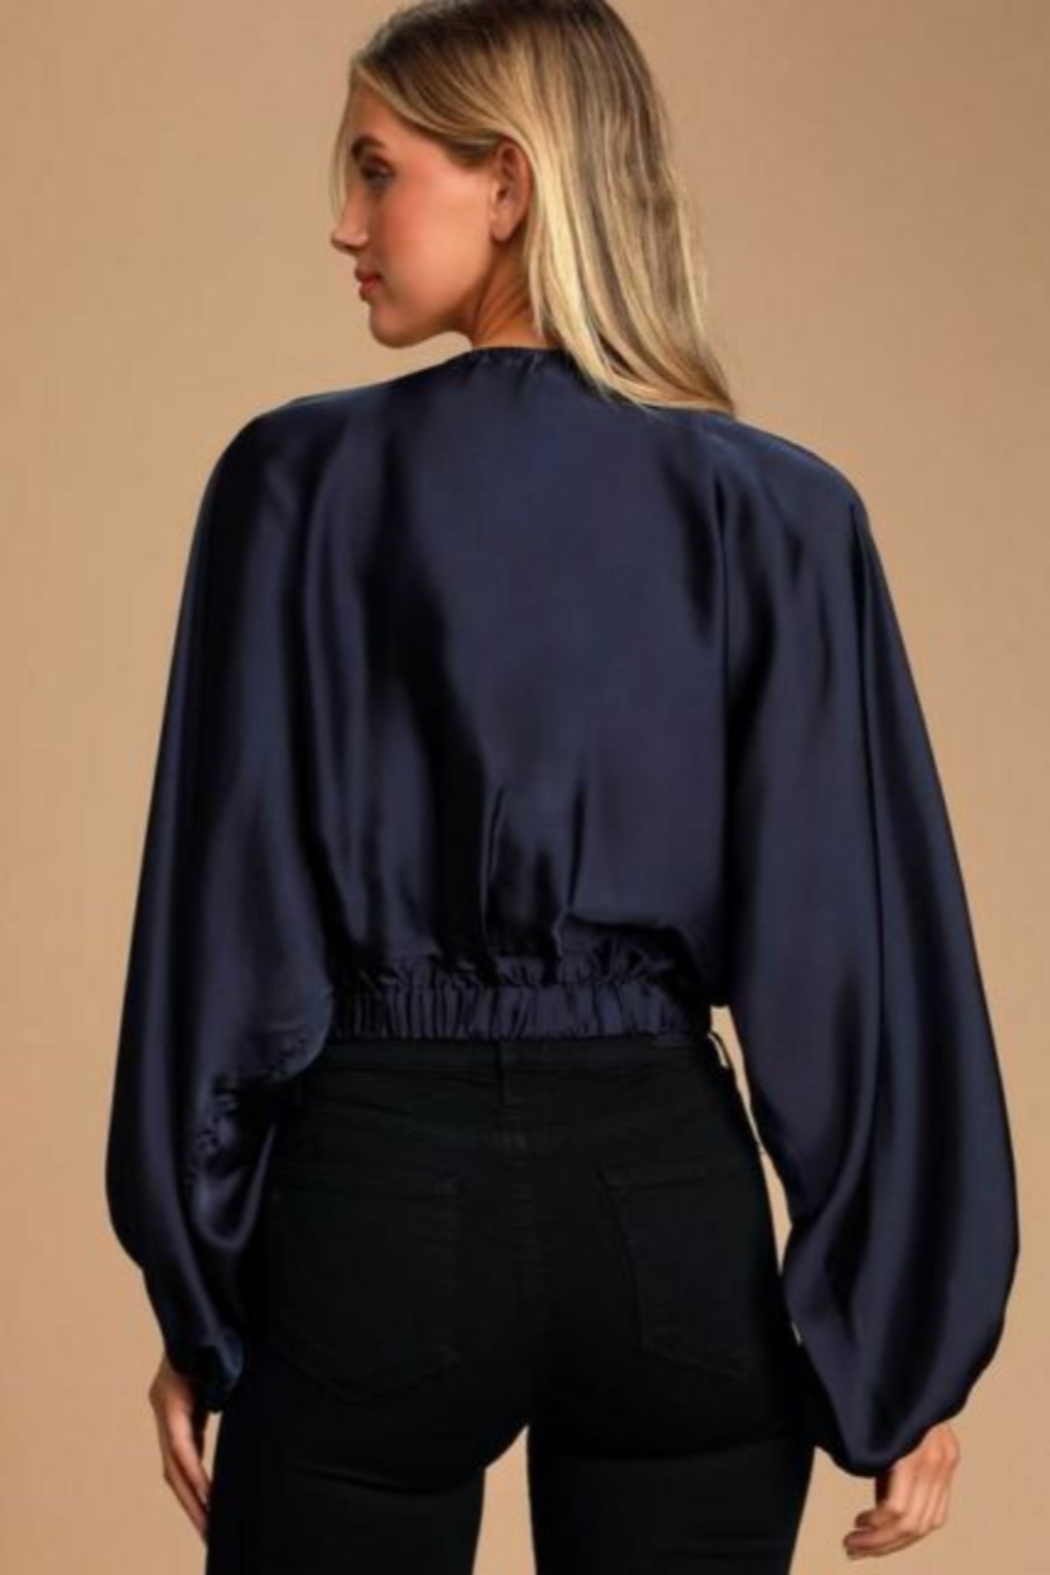 Free People Midnight Vibes - Navy Blue Top - Satin Surplice Top - Back Cropped Image